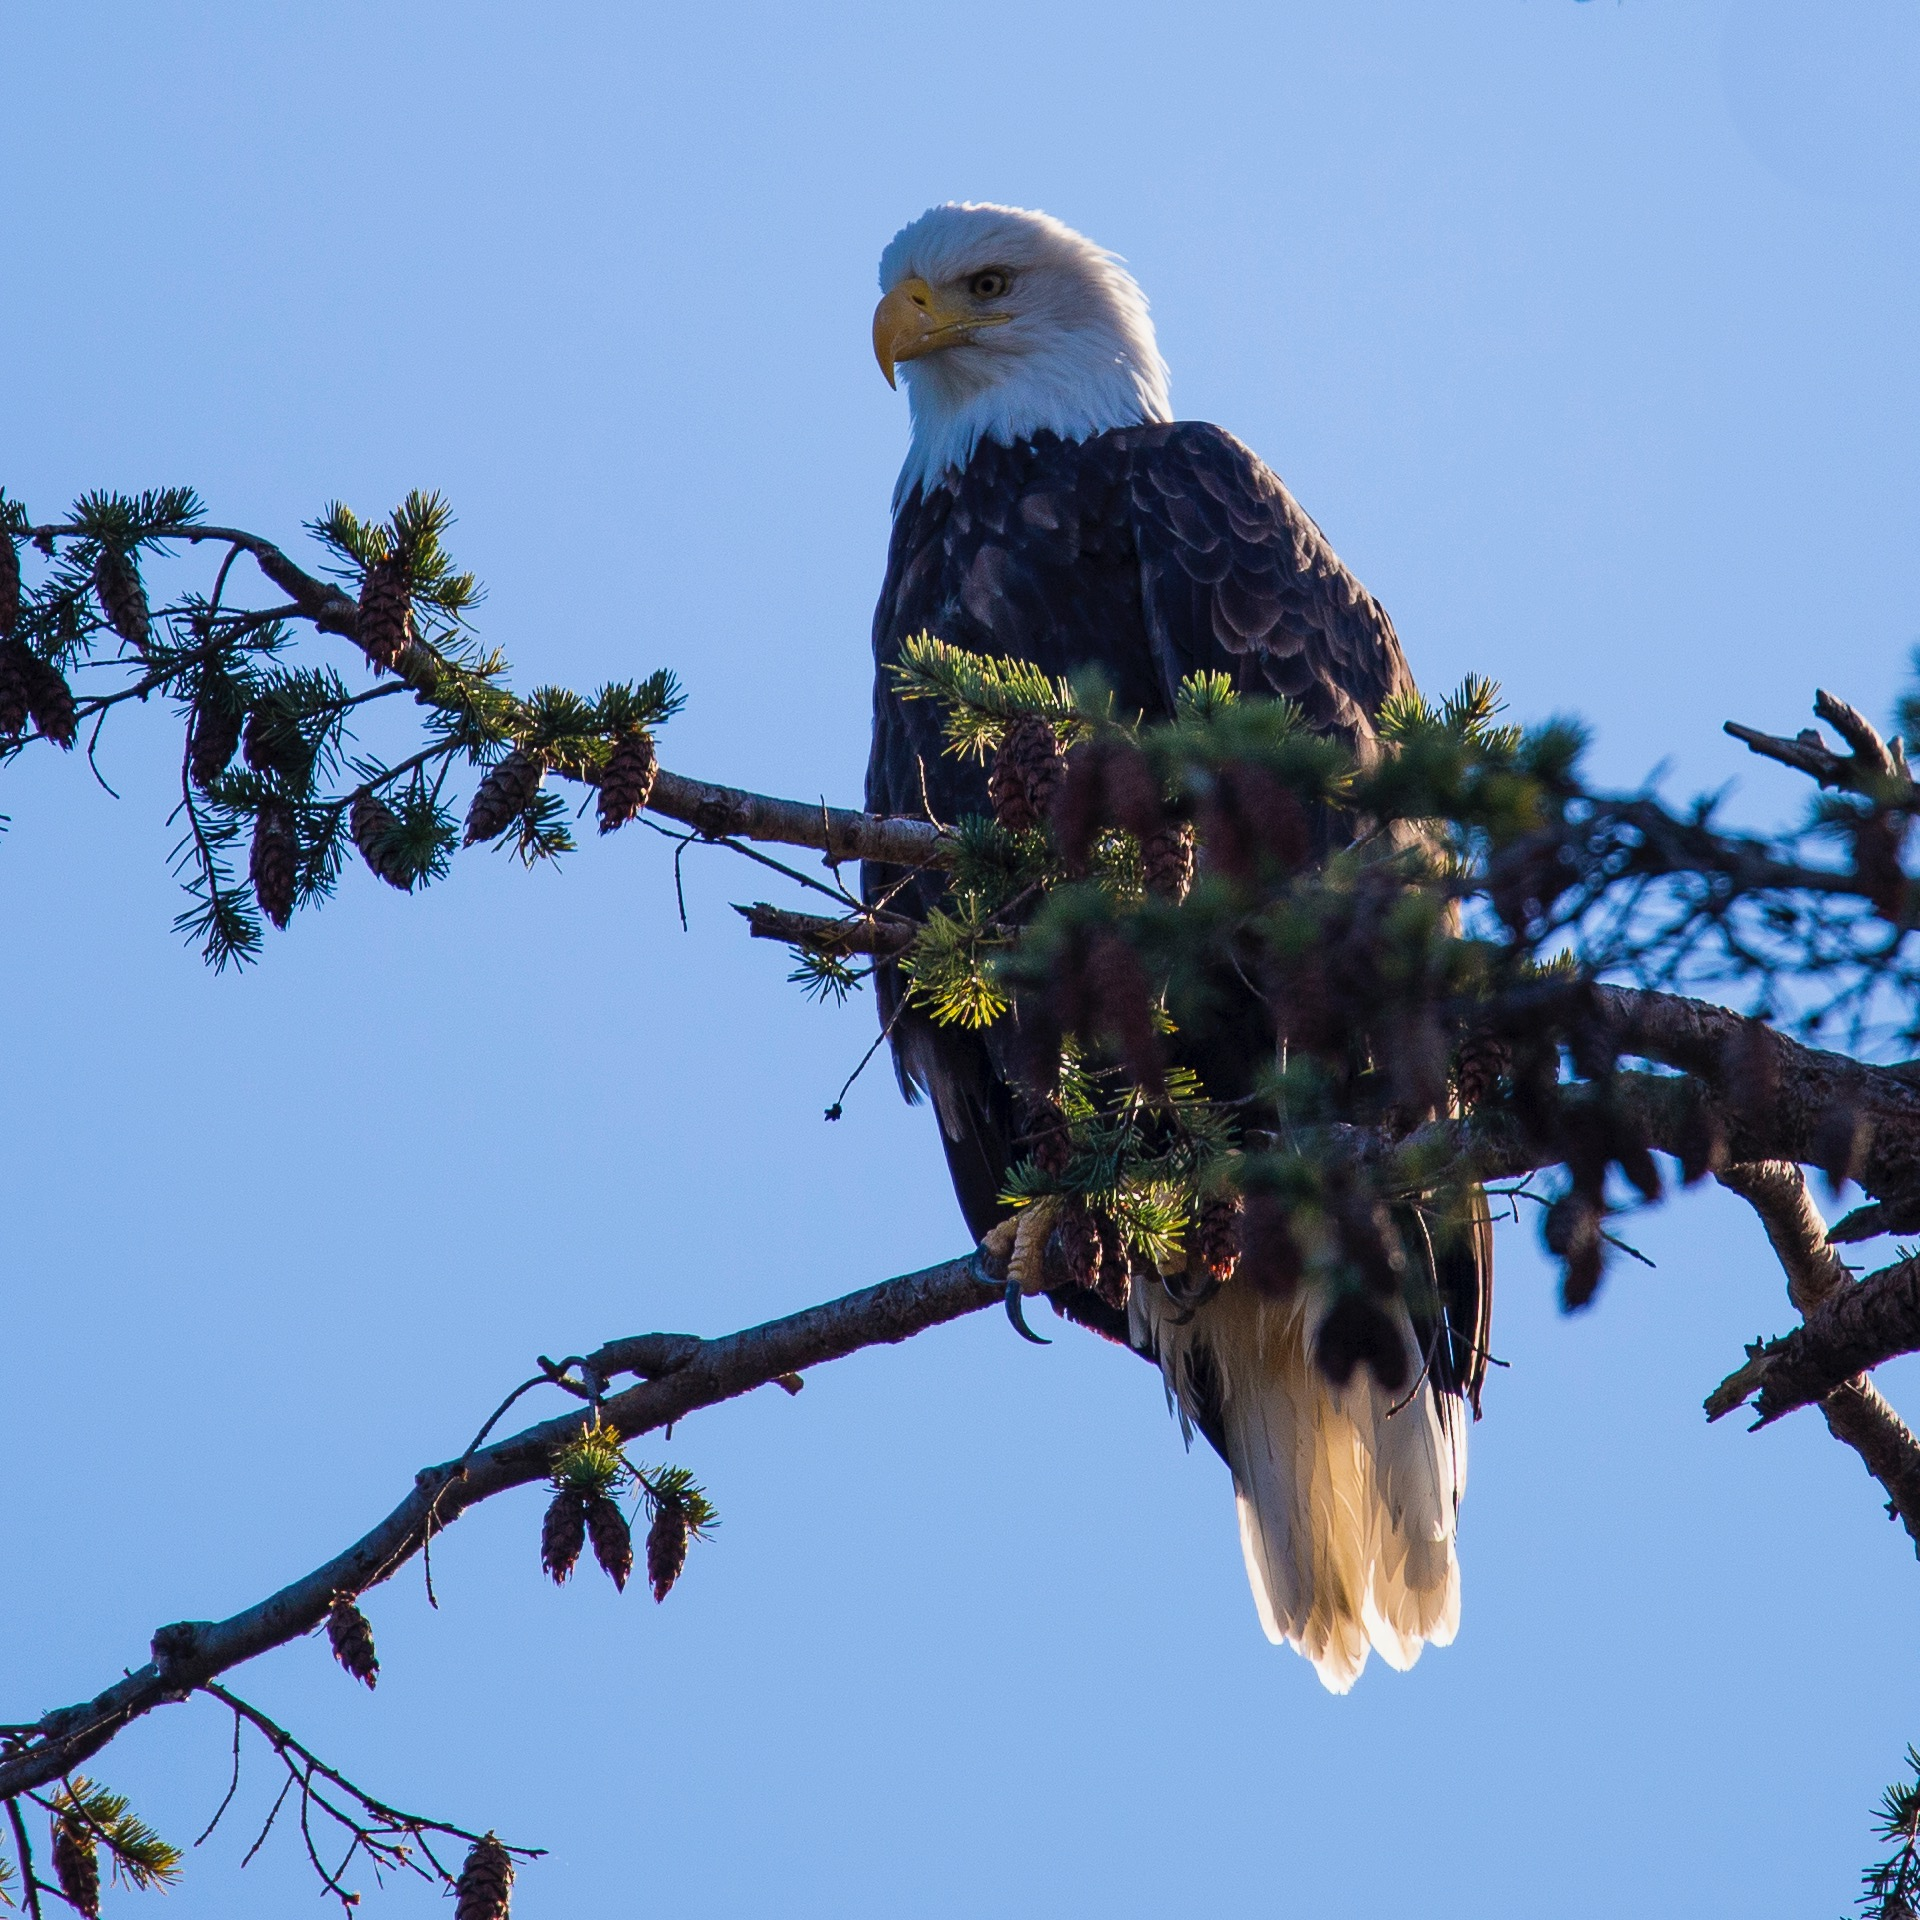 A bald eagle sitting up in the tree. Might have been the same one from earlier in the morning with the fish.